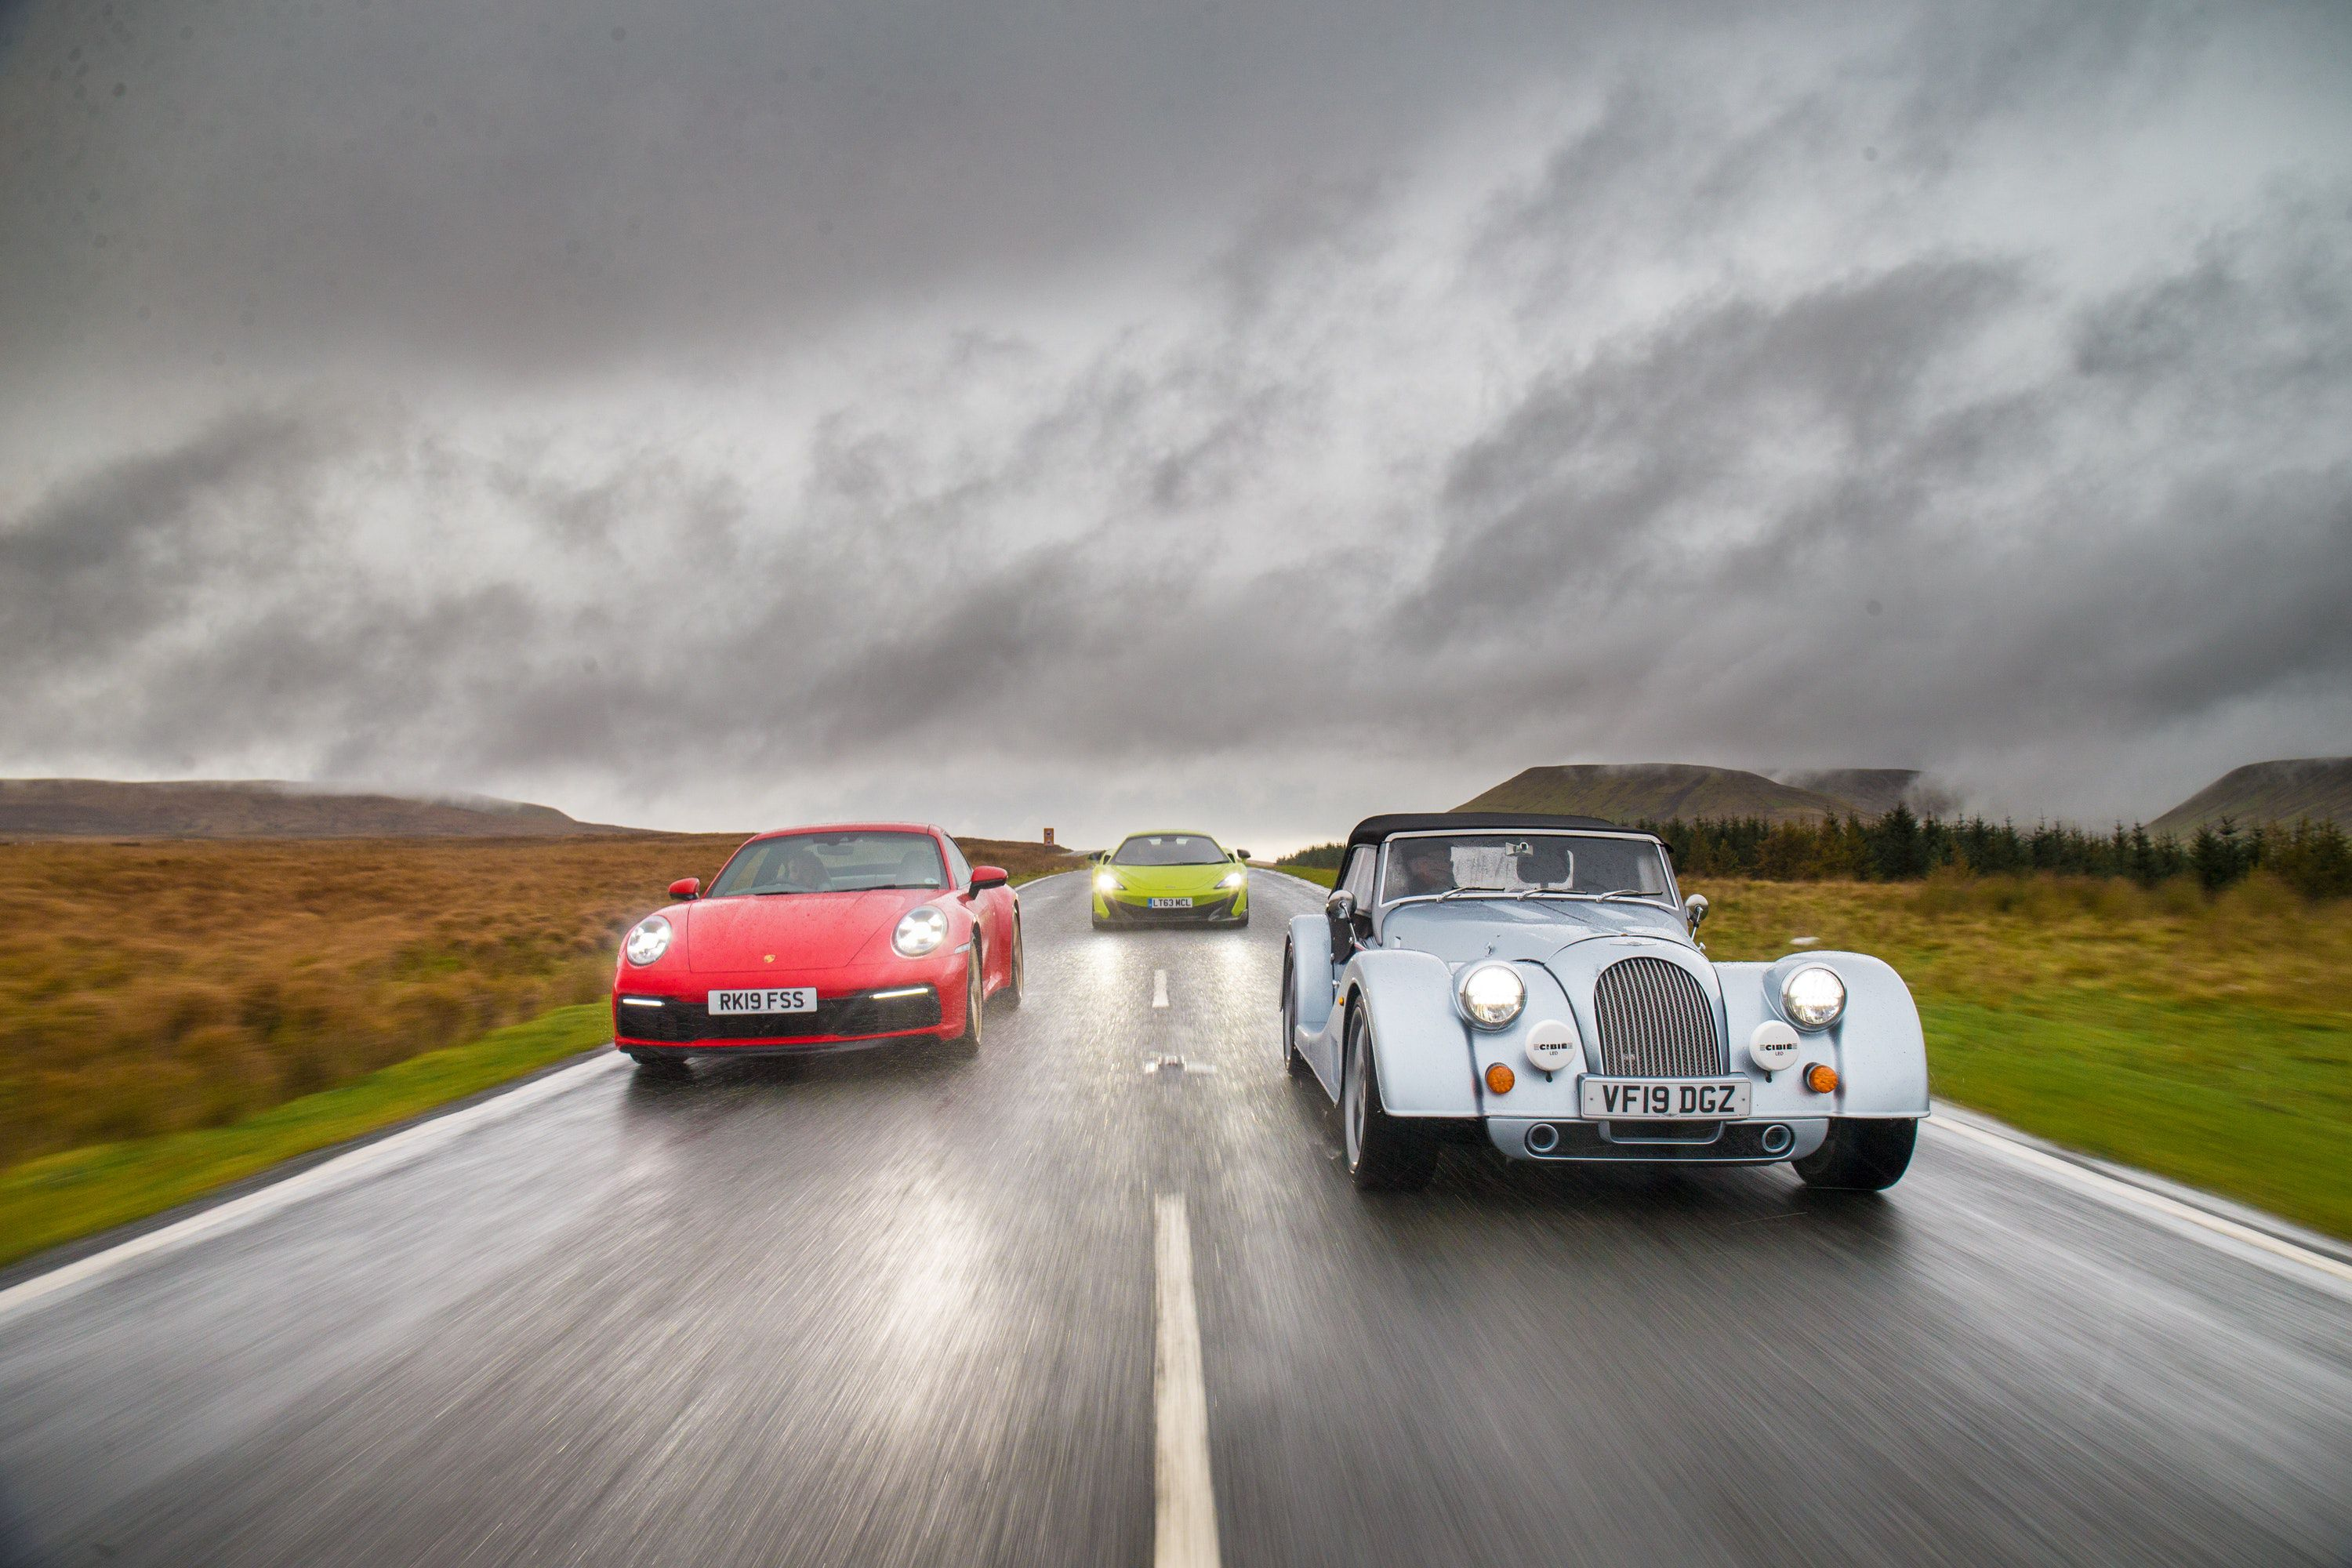 Morgan driving with other cars